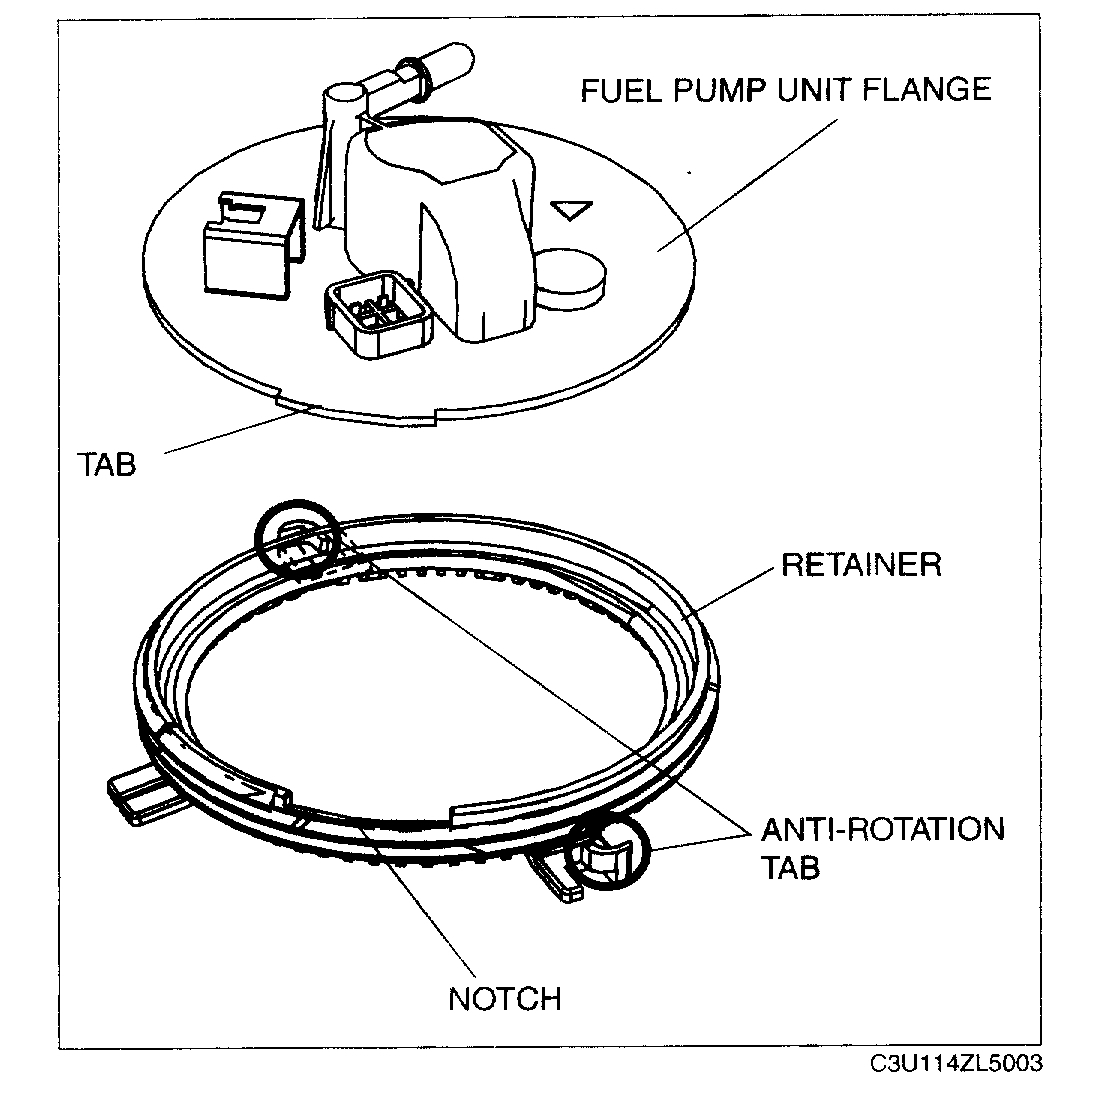 Fuel Filter Location: Location of the Fuel Filter.